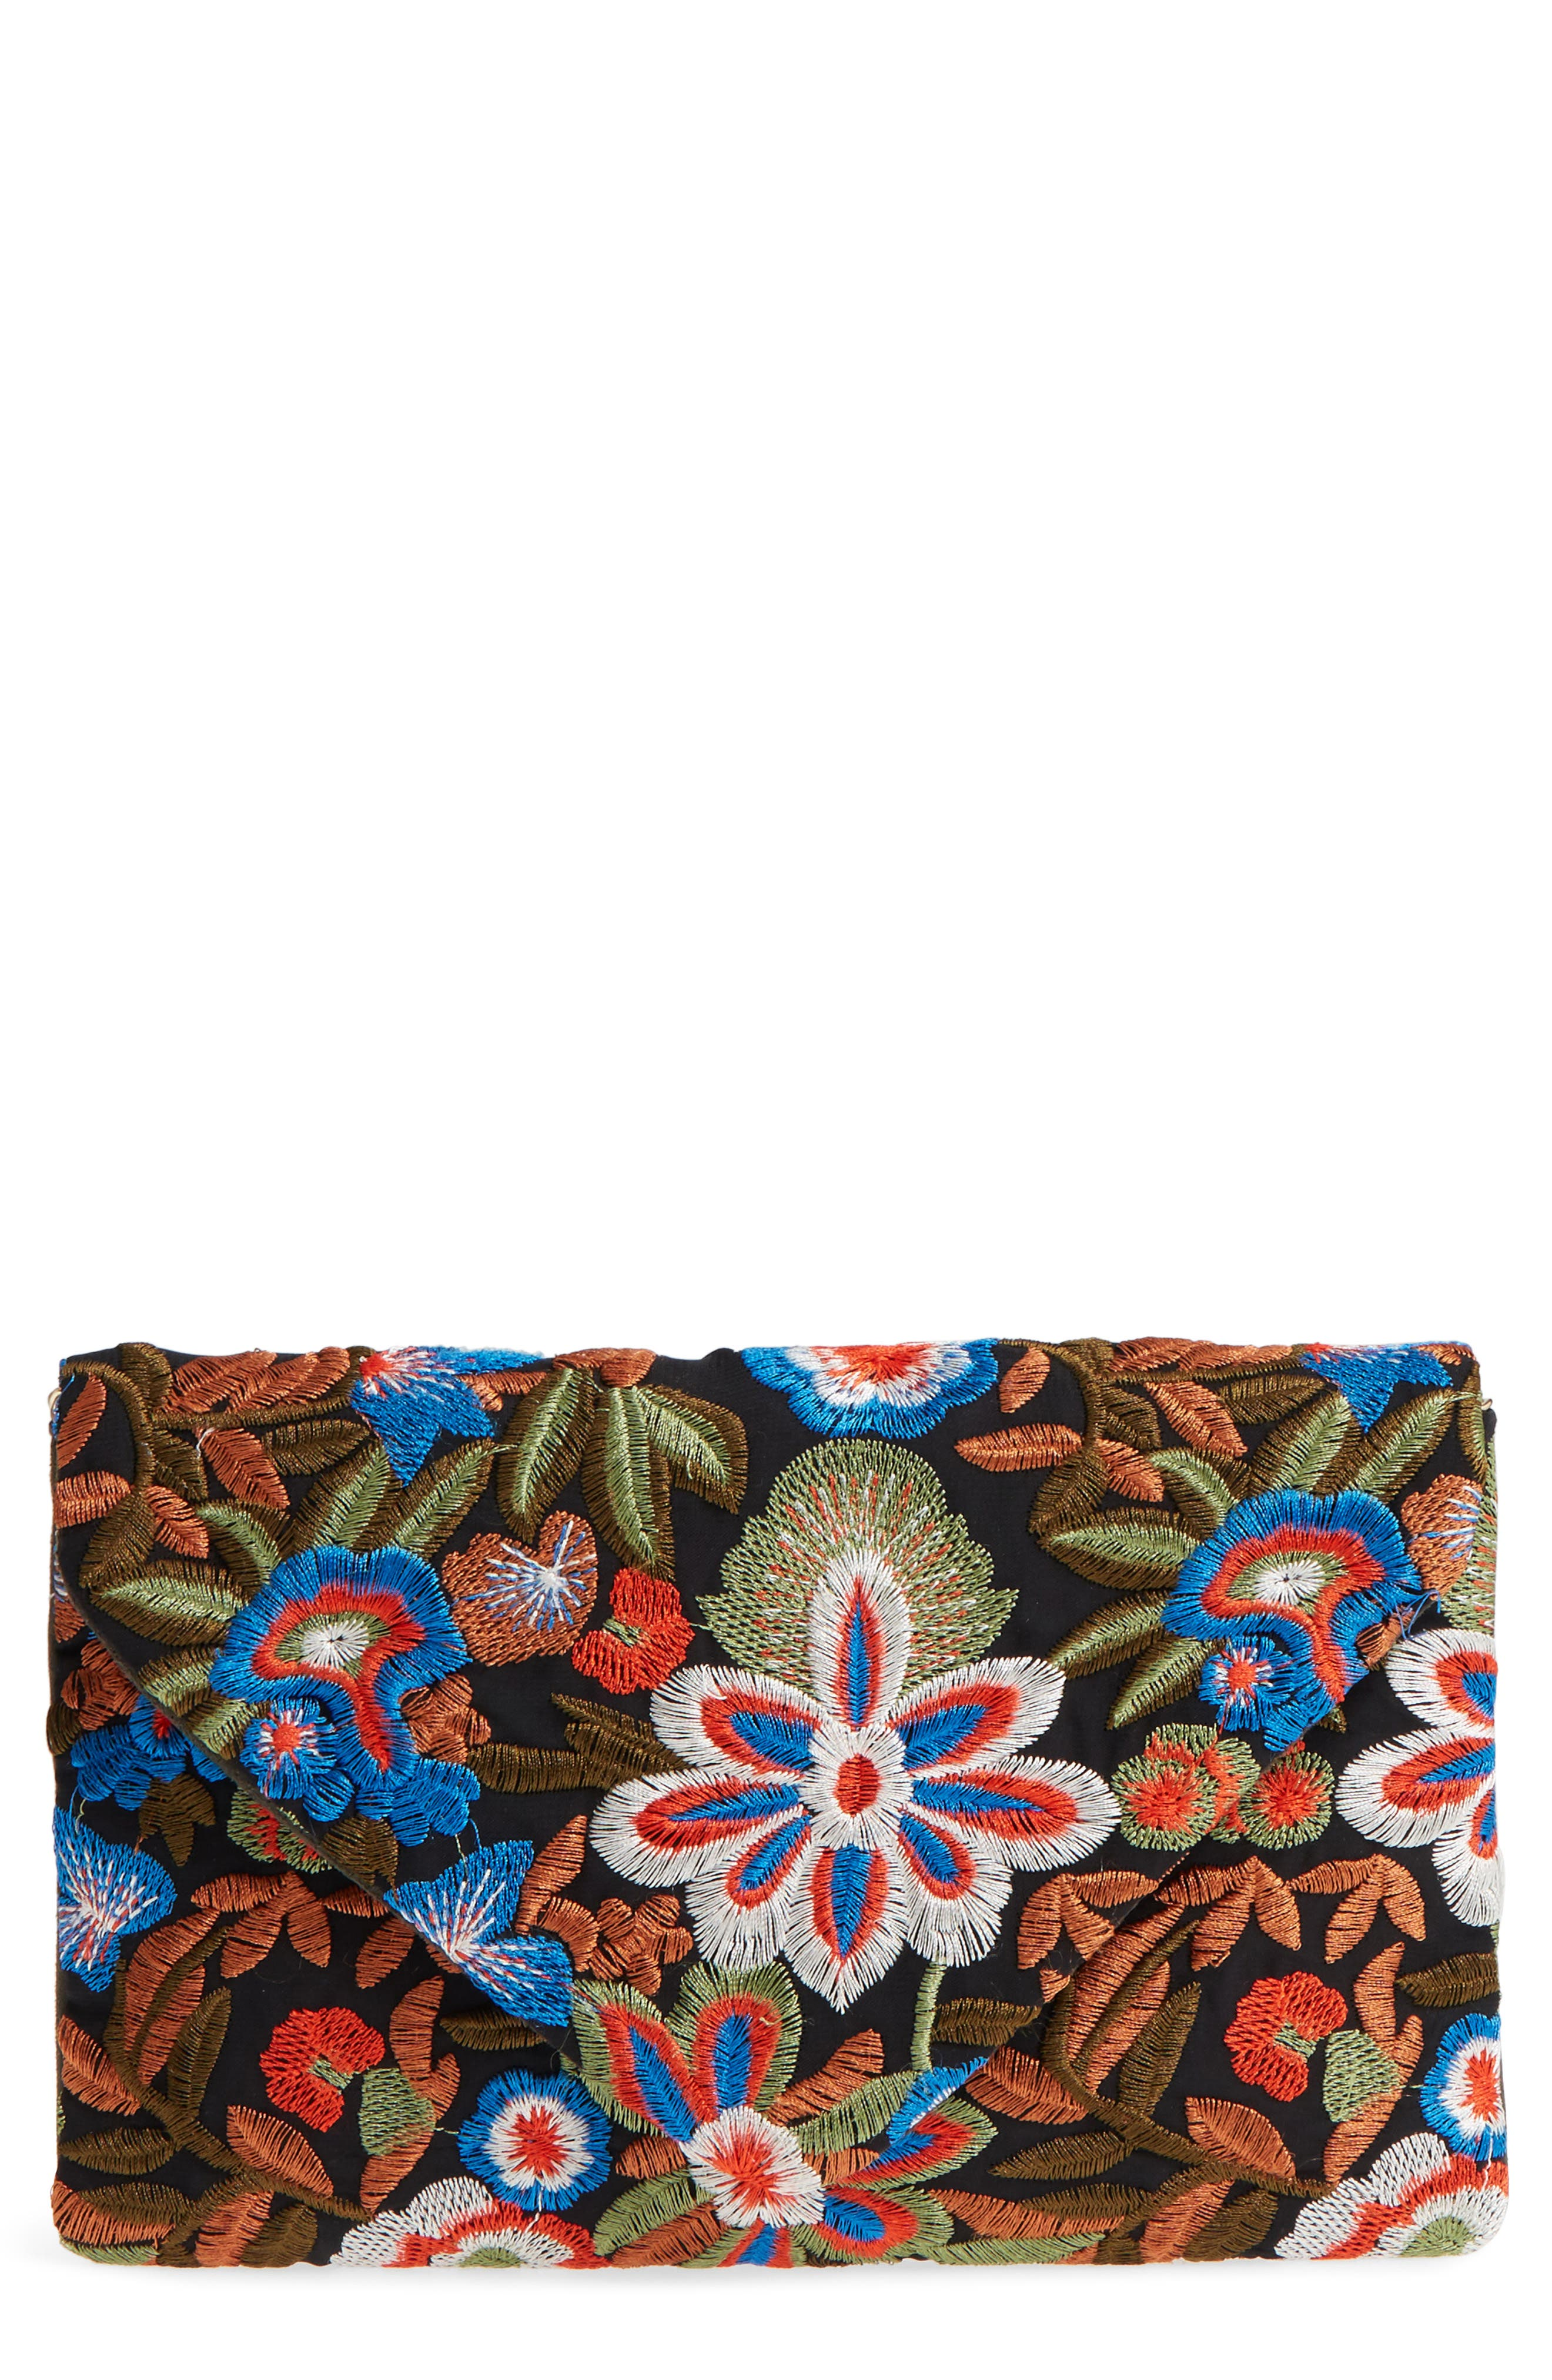 Malibu Skye Embroidered Envelope Clutch